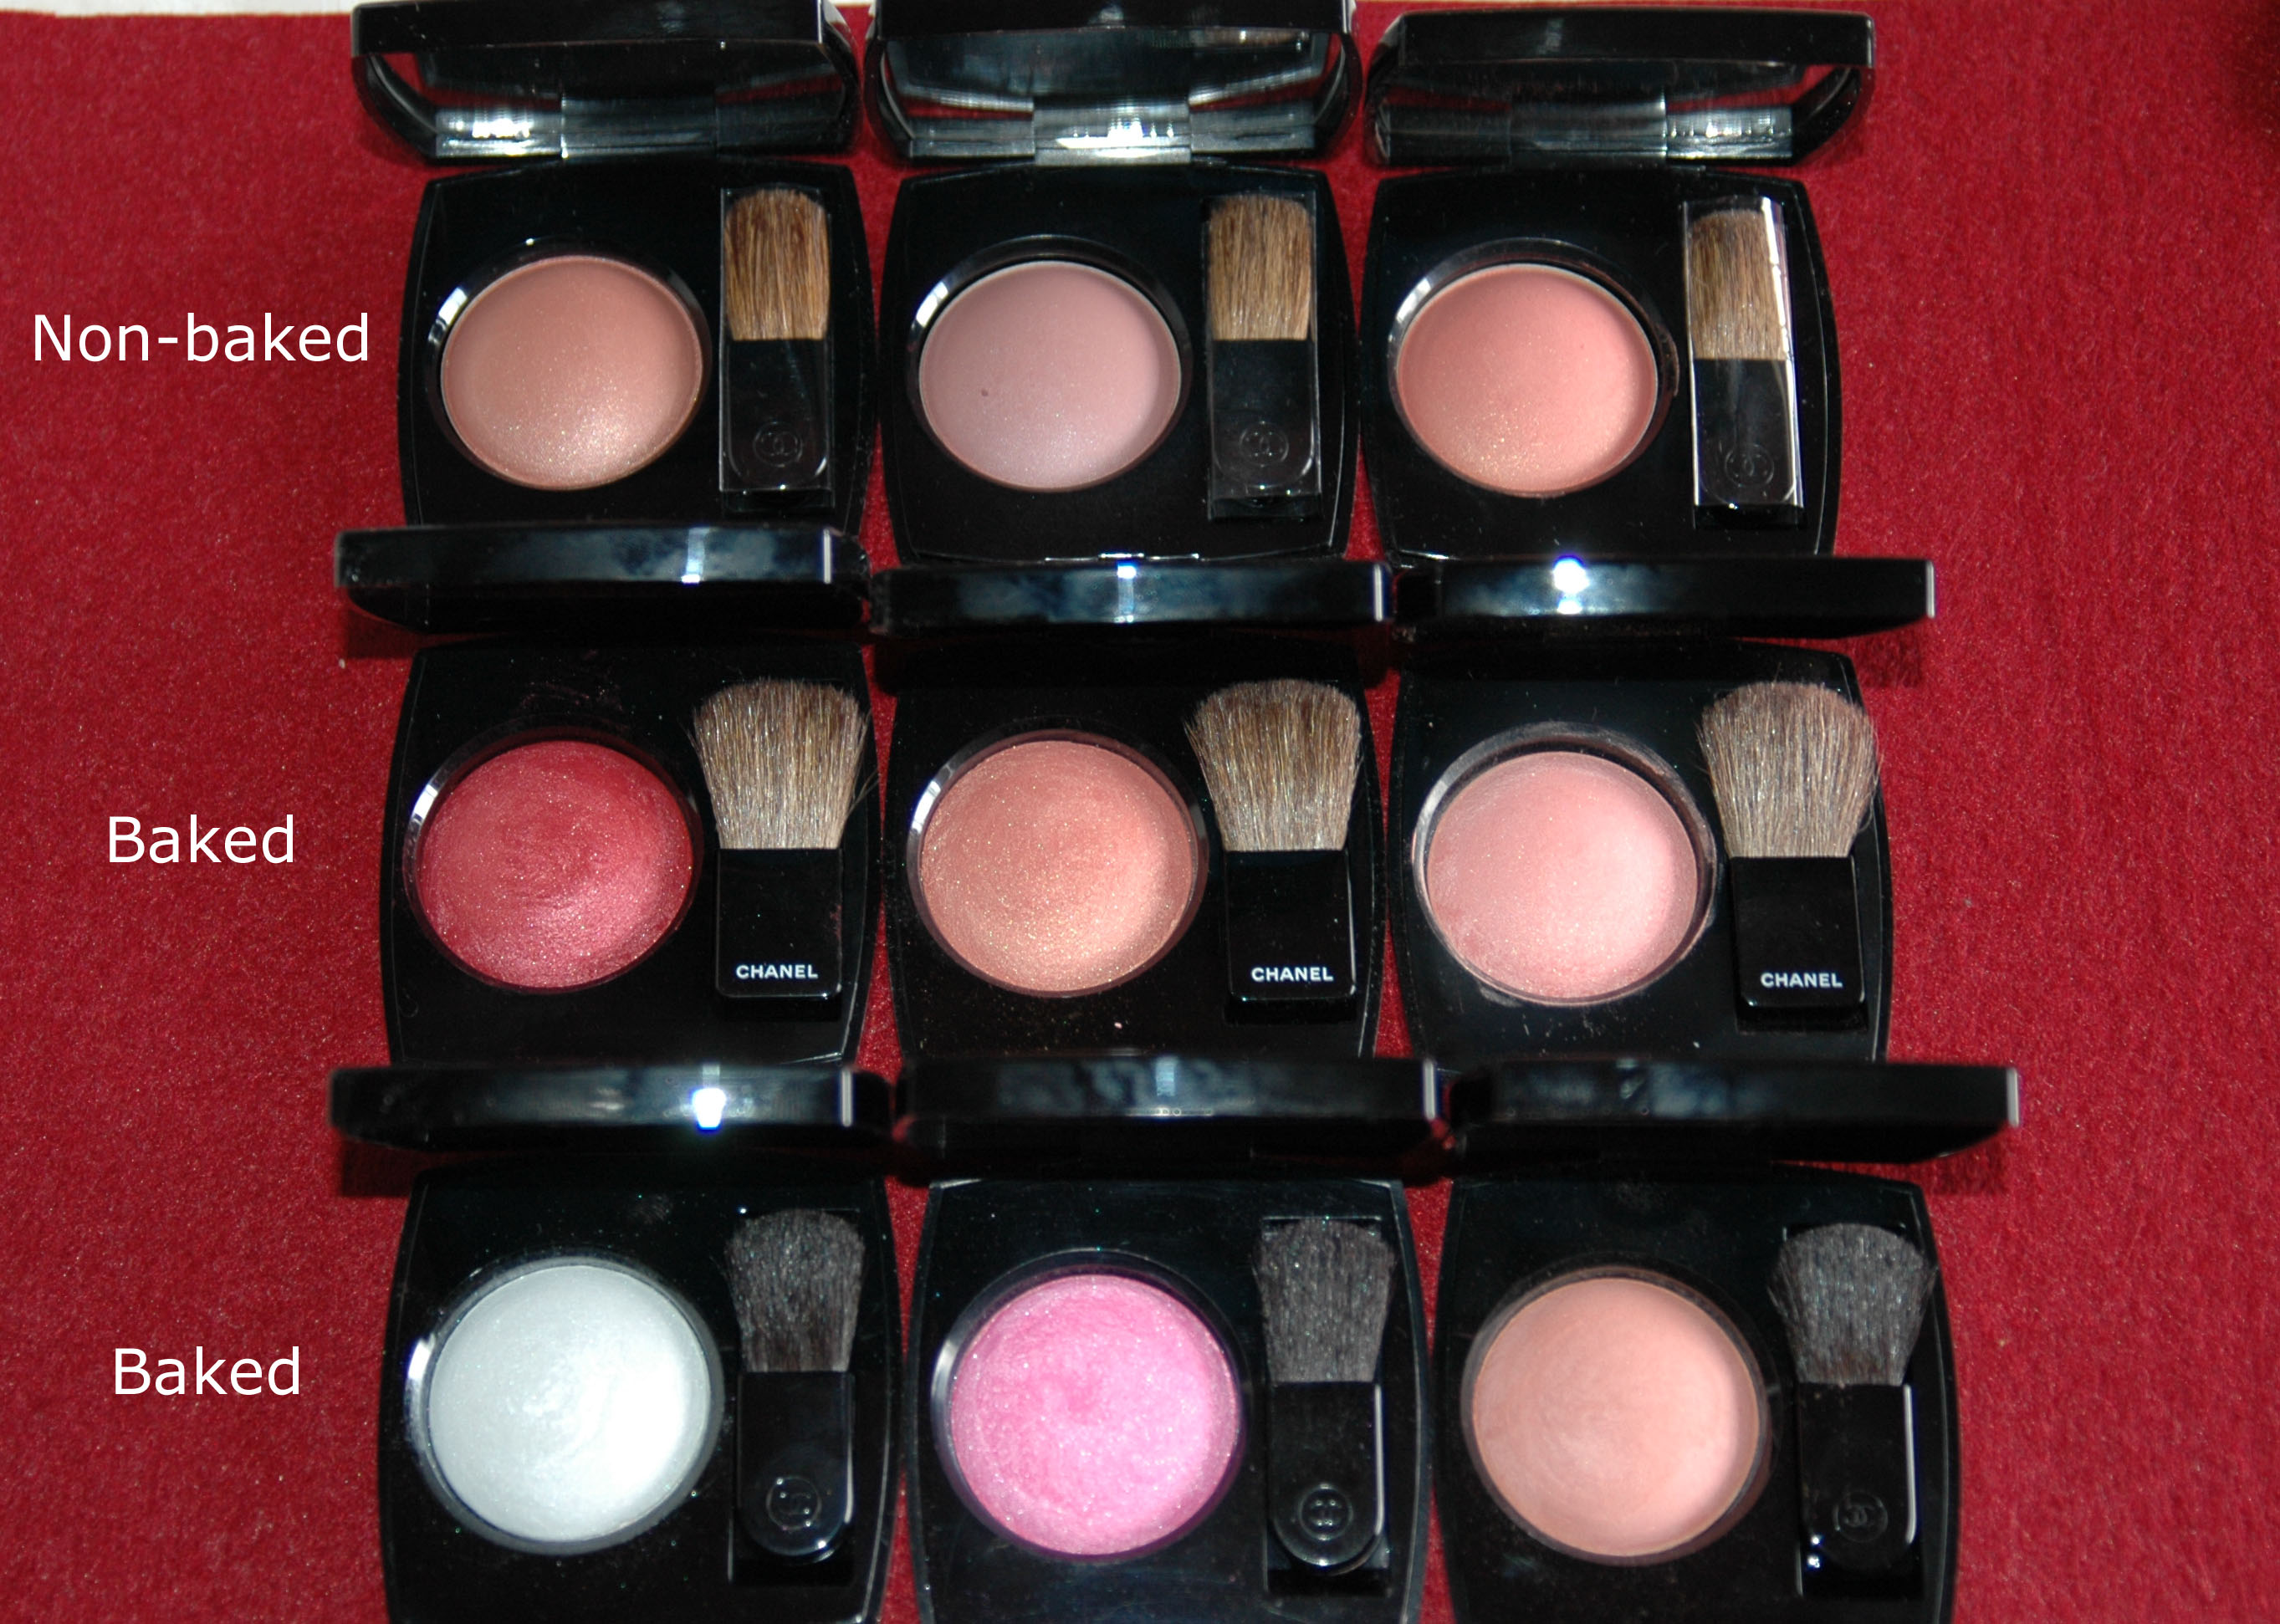 8cb69805f Chanel Les 4 Ombres eyeshadow quads and Joues Contraste blushes ...